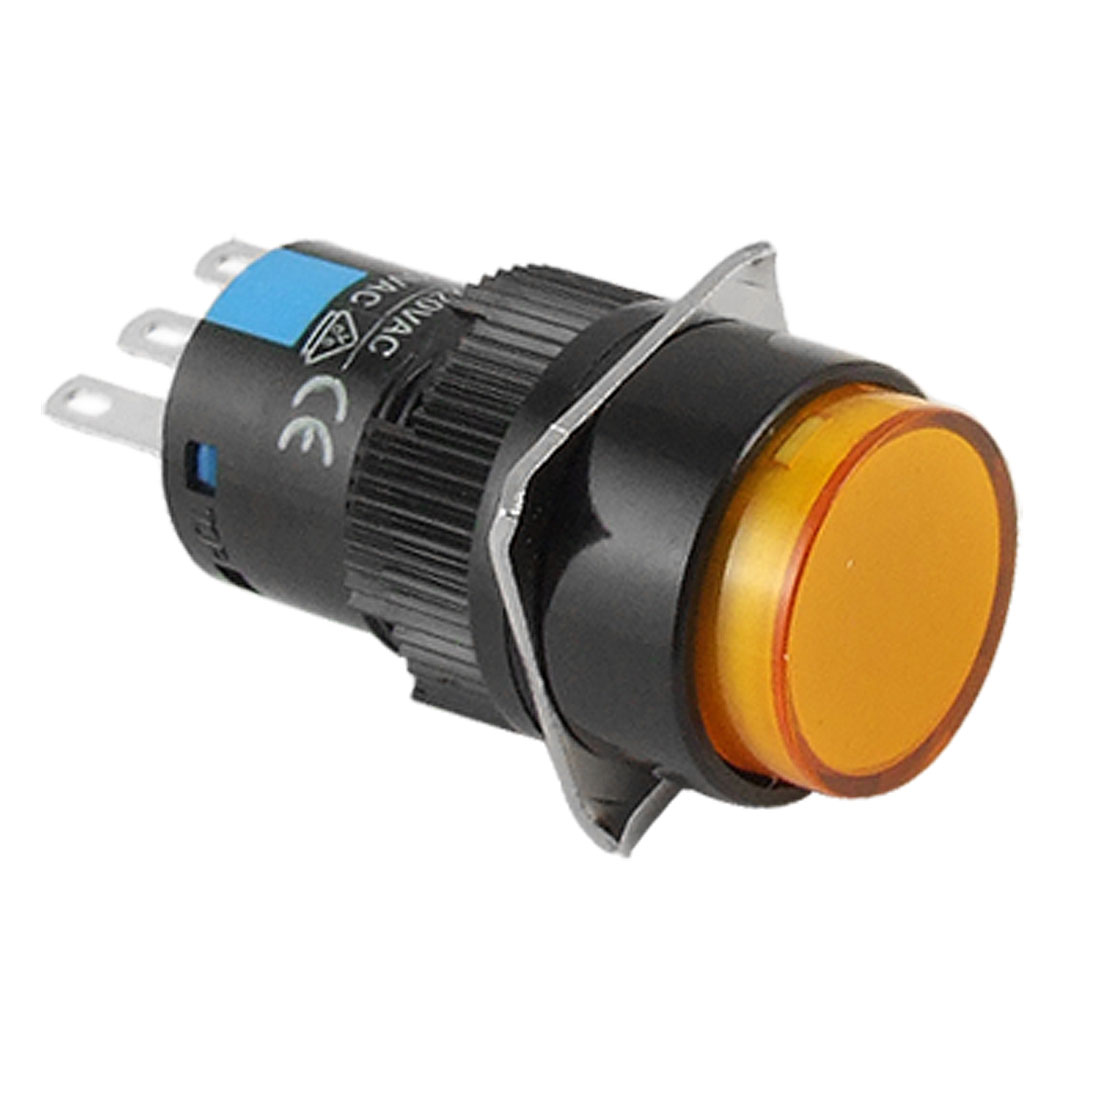 Orange Round Cap Momentary Contact Push Button Switch AC 250V 5A